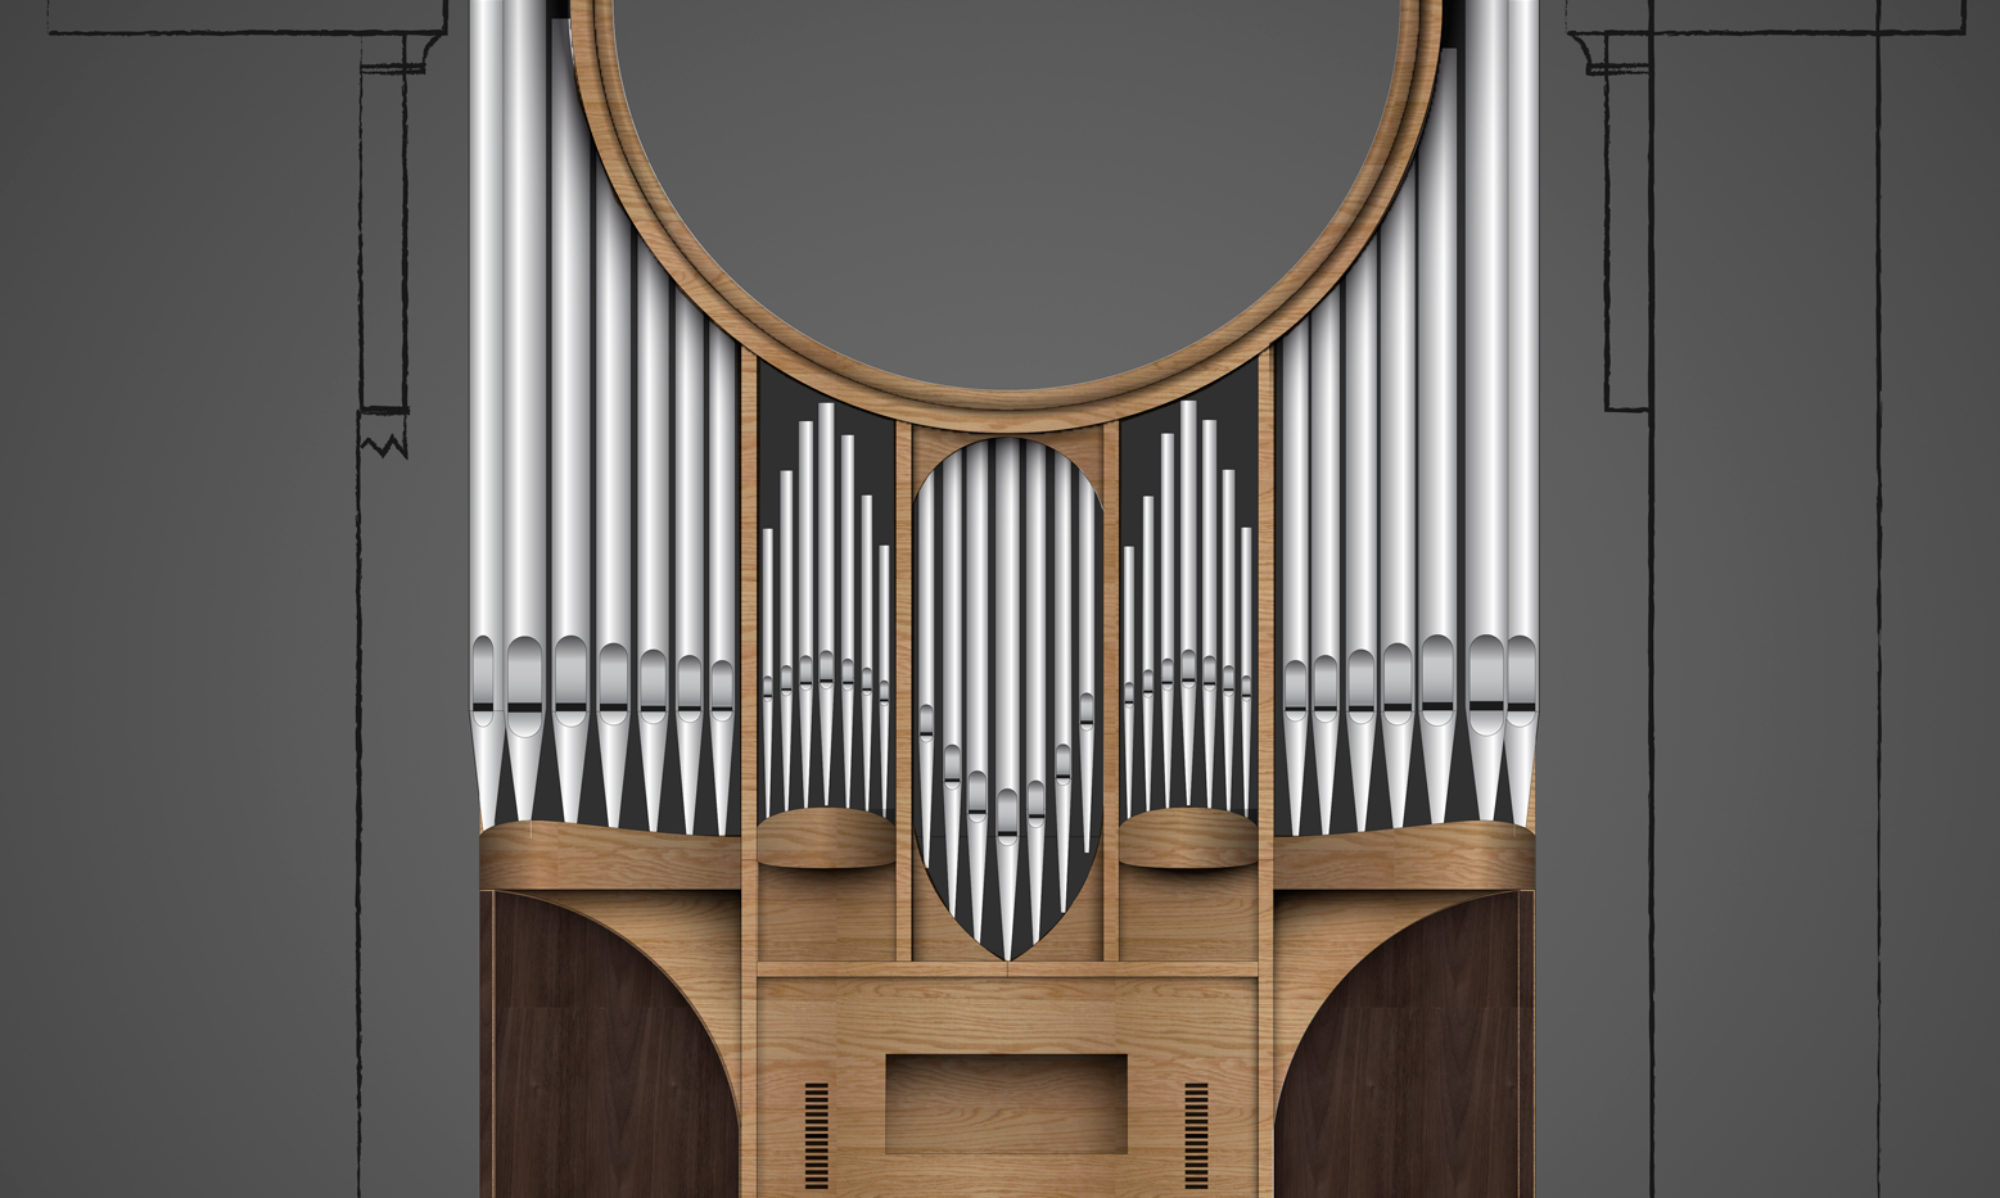 Acquisition d'un orgue baroque